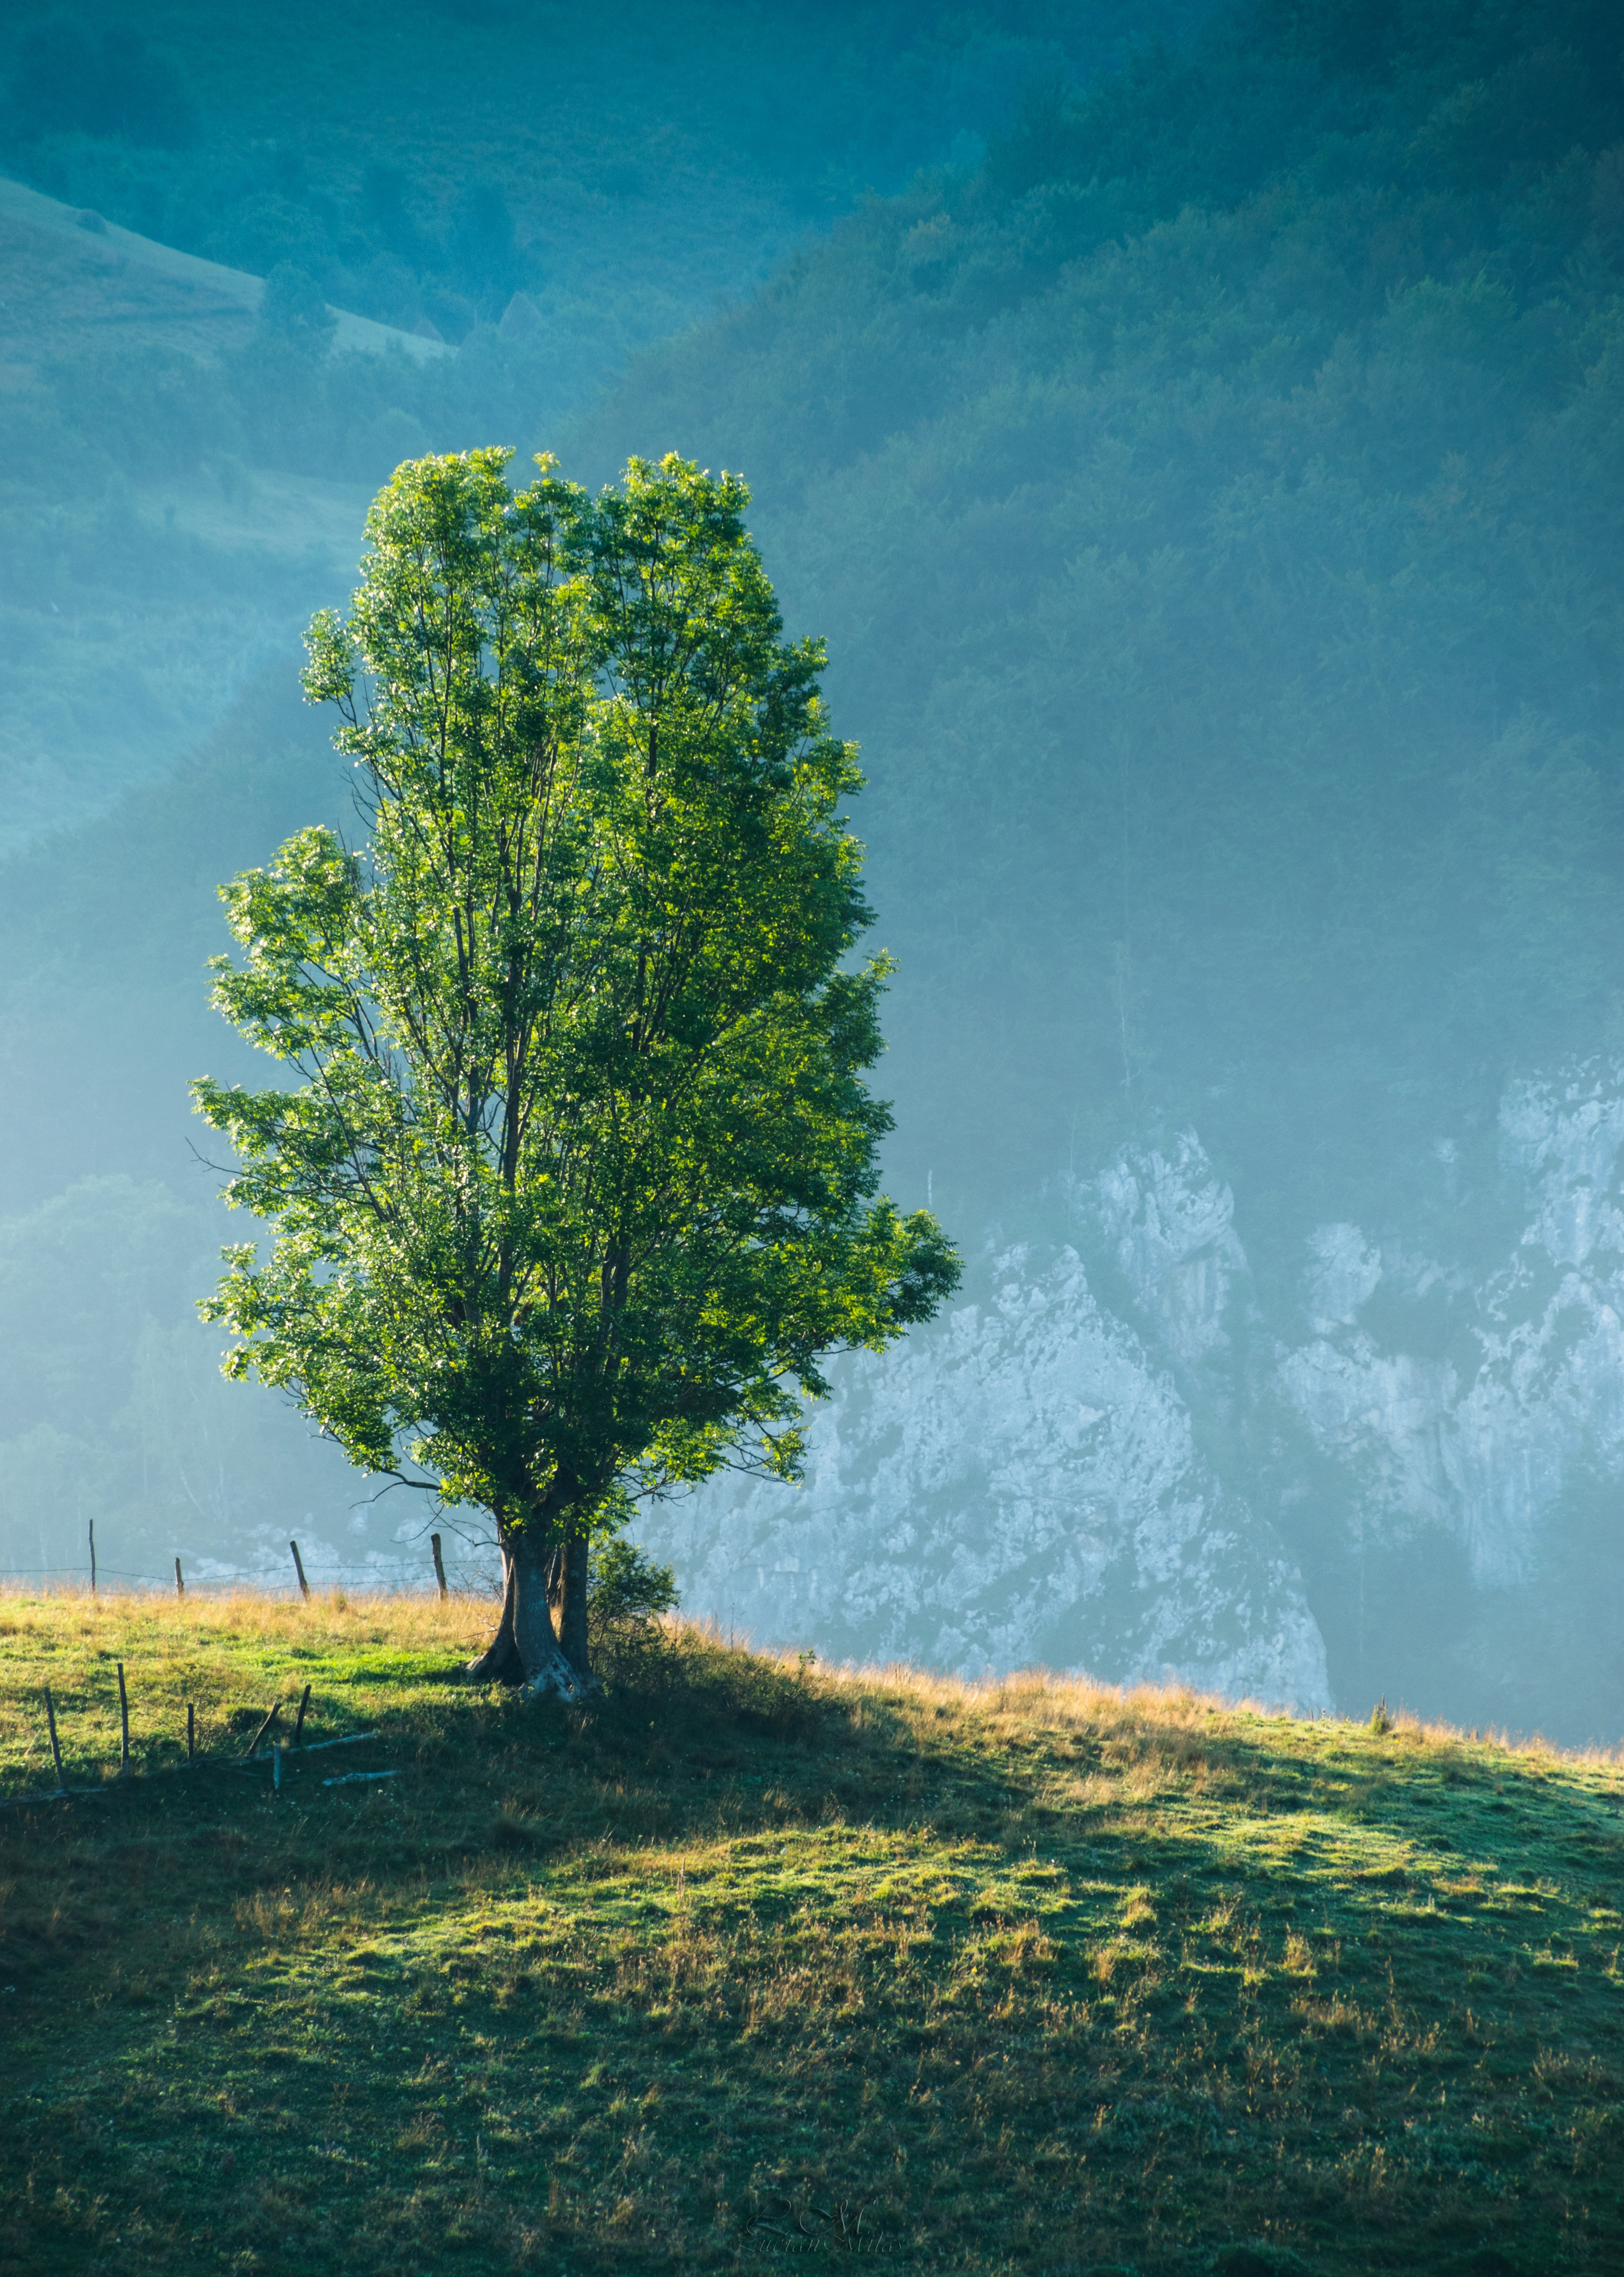 Brown And Green Tree On Grass 183 Free Stock Photo